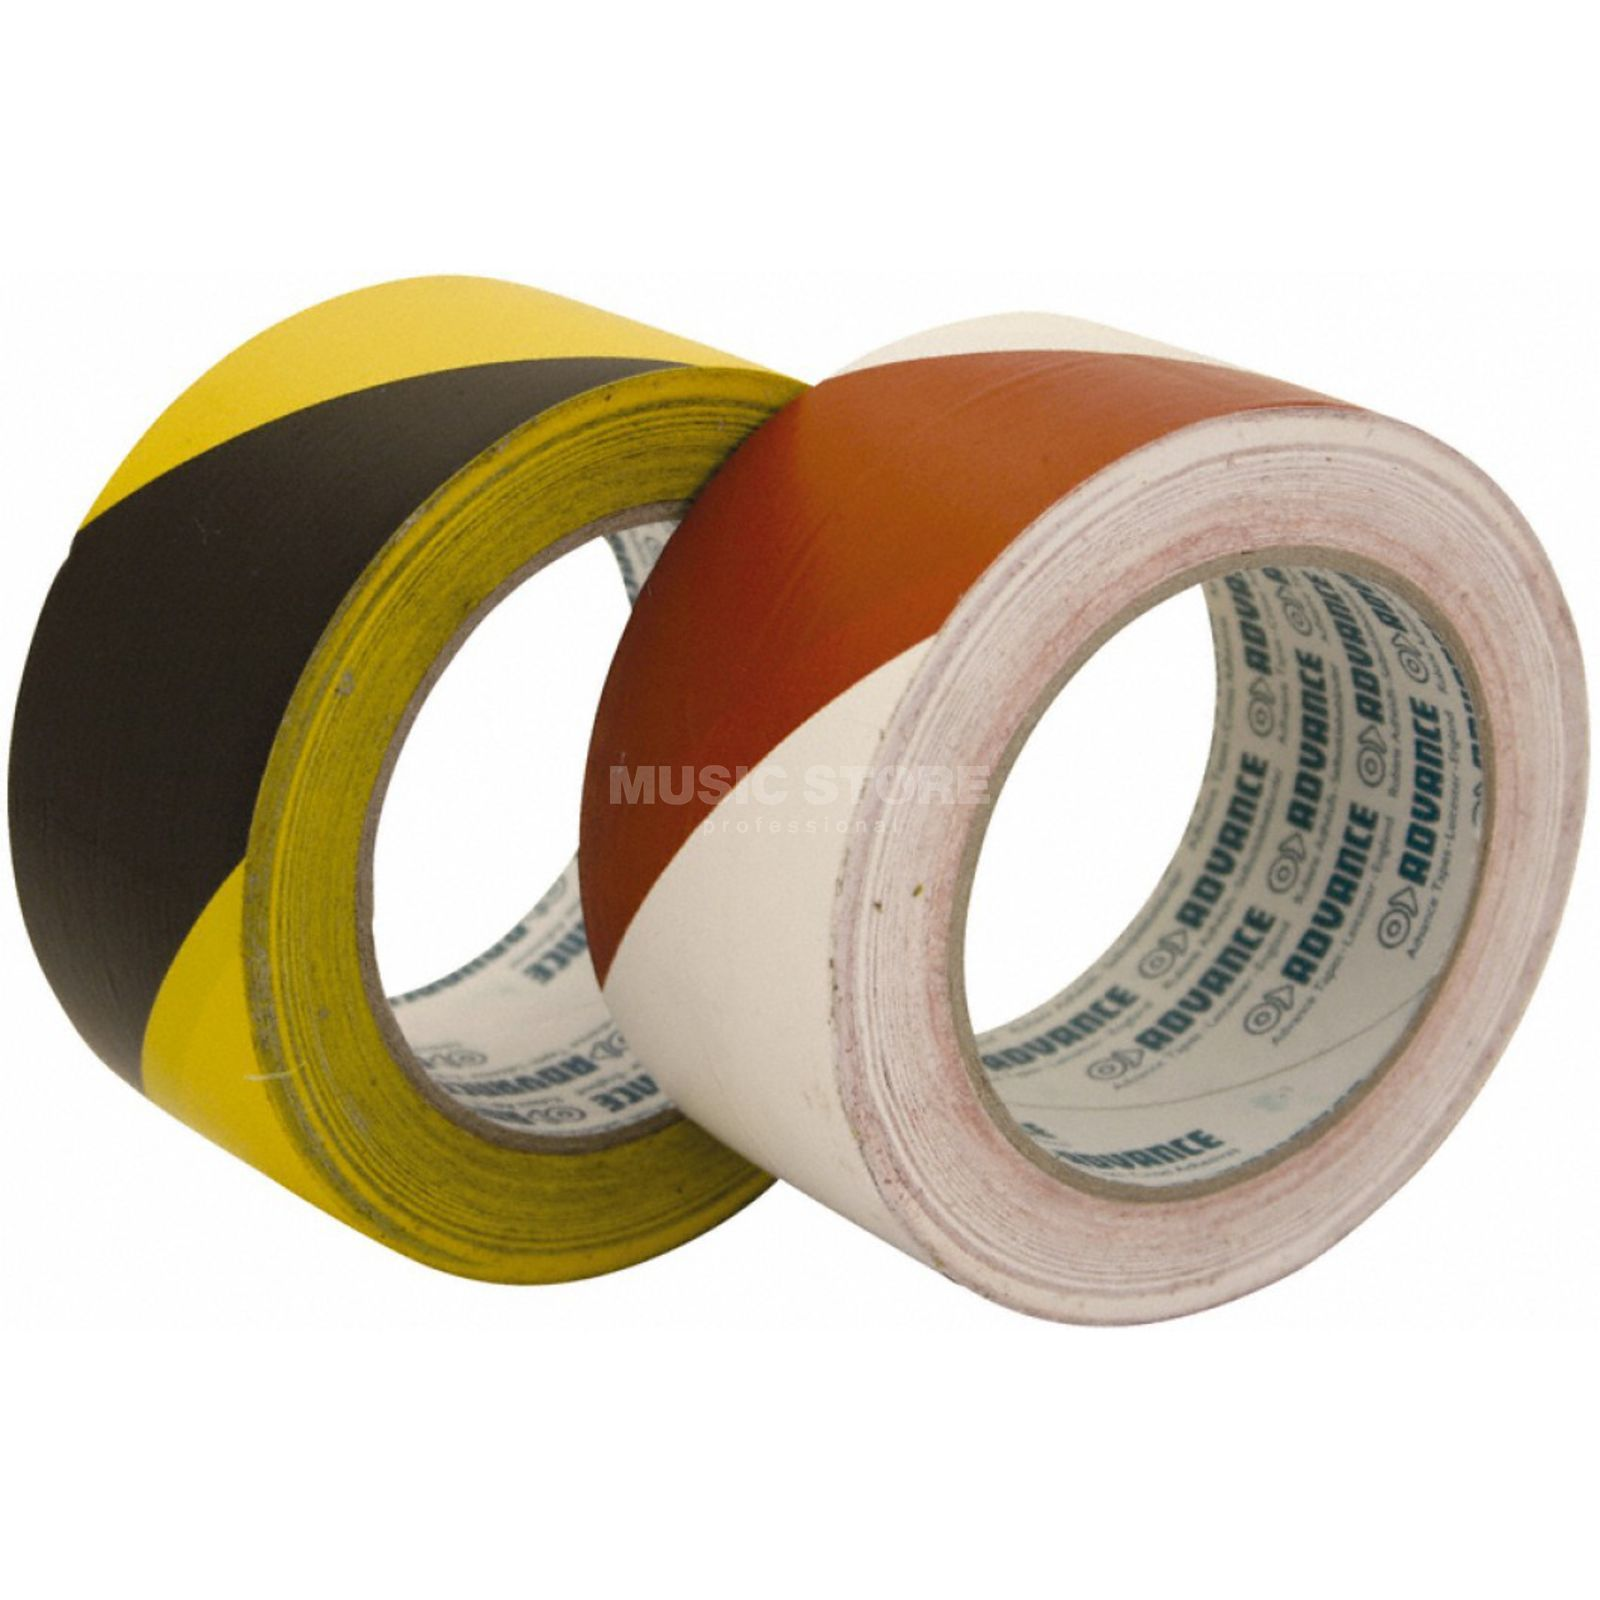 Advance AT 8 Floor Marking Tape red/white, 33m, 50mm Produktbillede